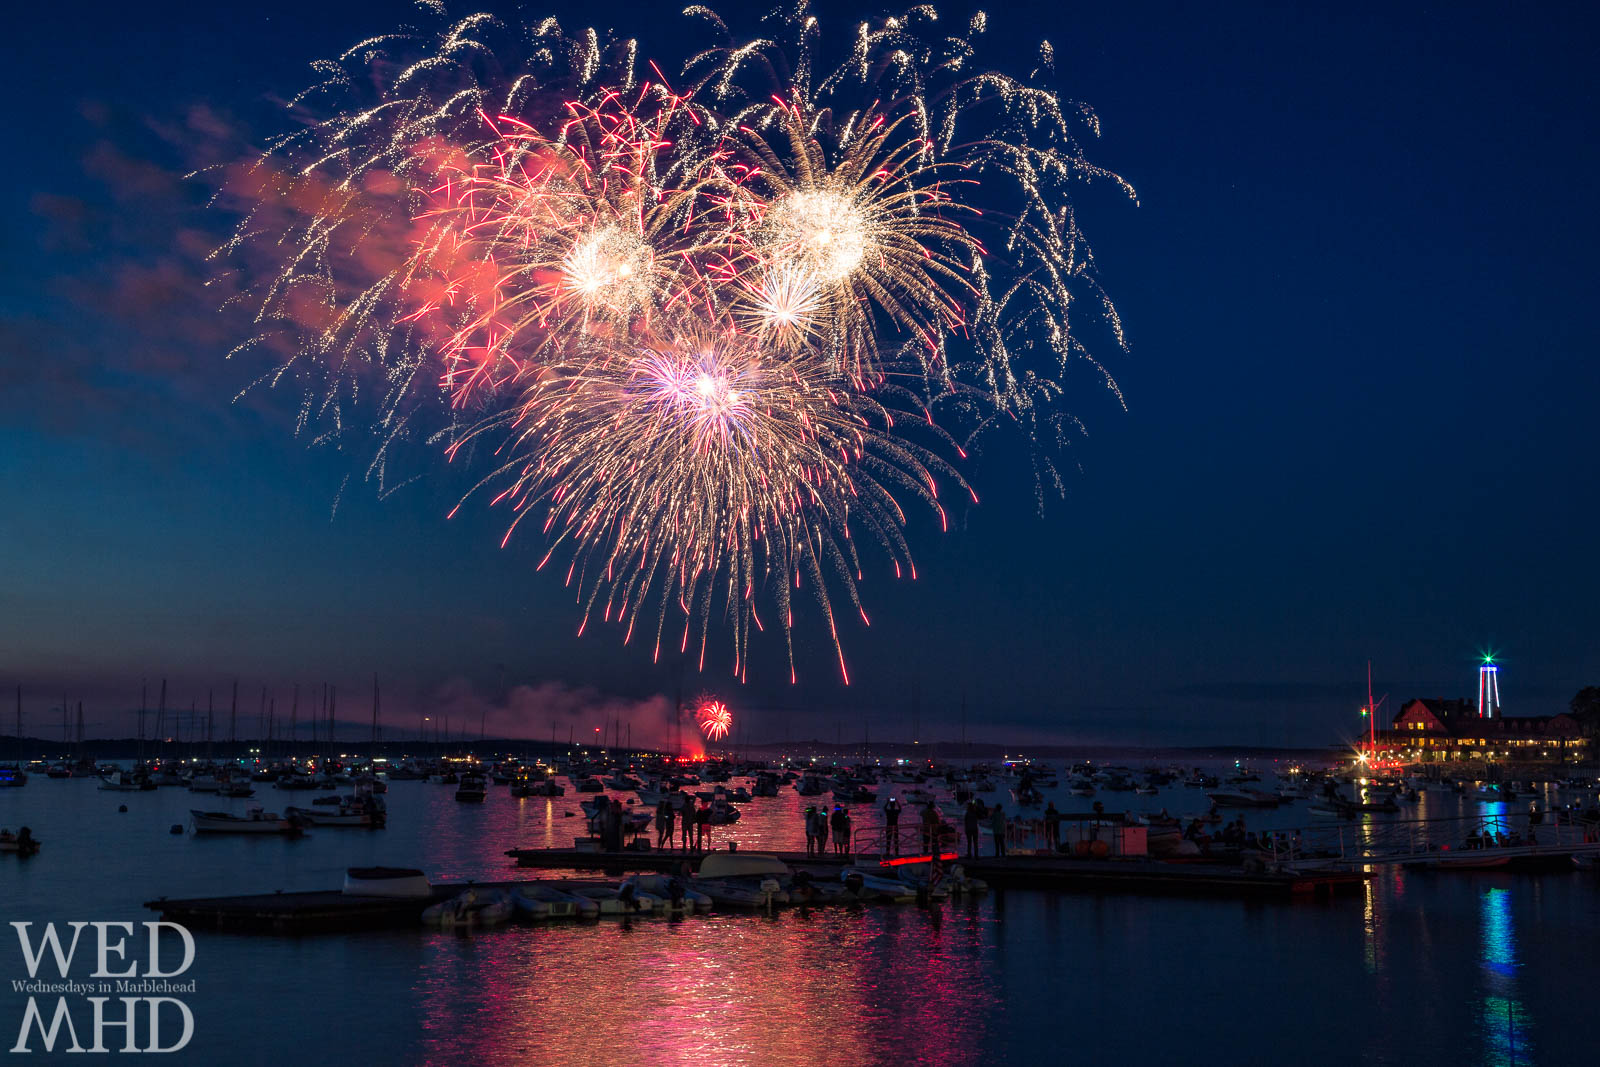 A view of fireworks over Marblehead harbor from the Pleon Yacht Club on Marblehead Neck captures a group of spectators on a float taking in the show